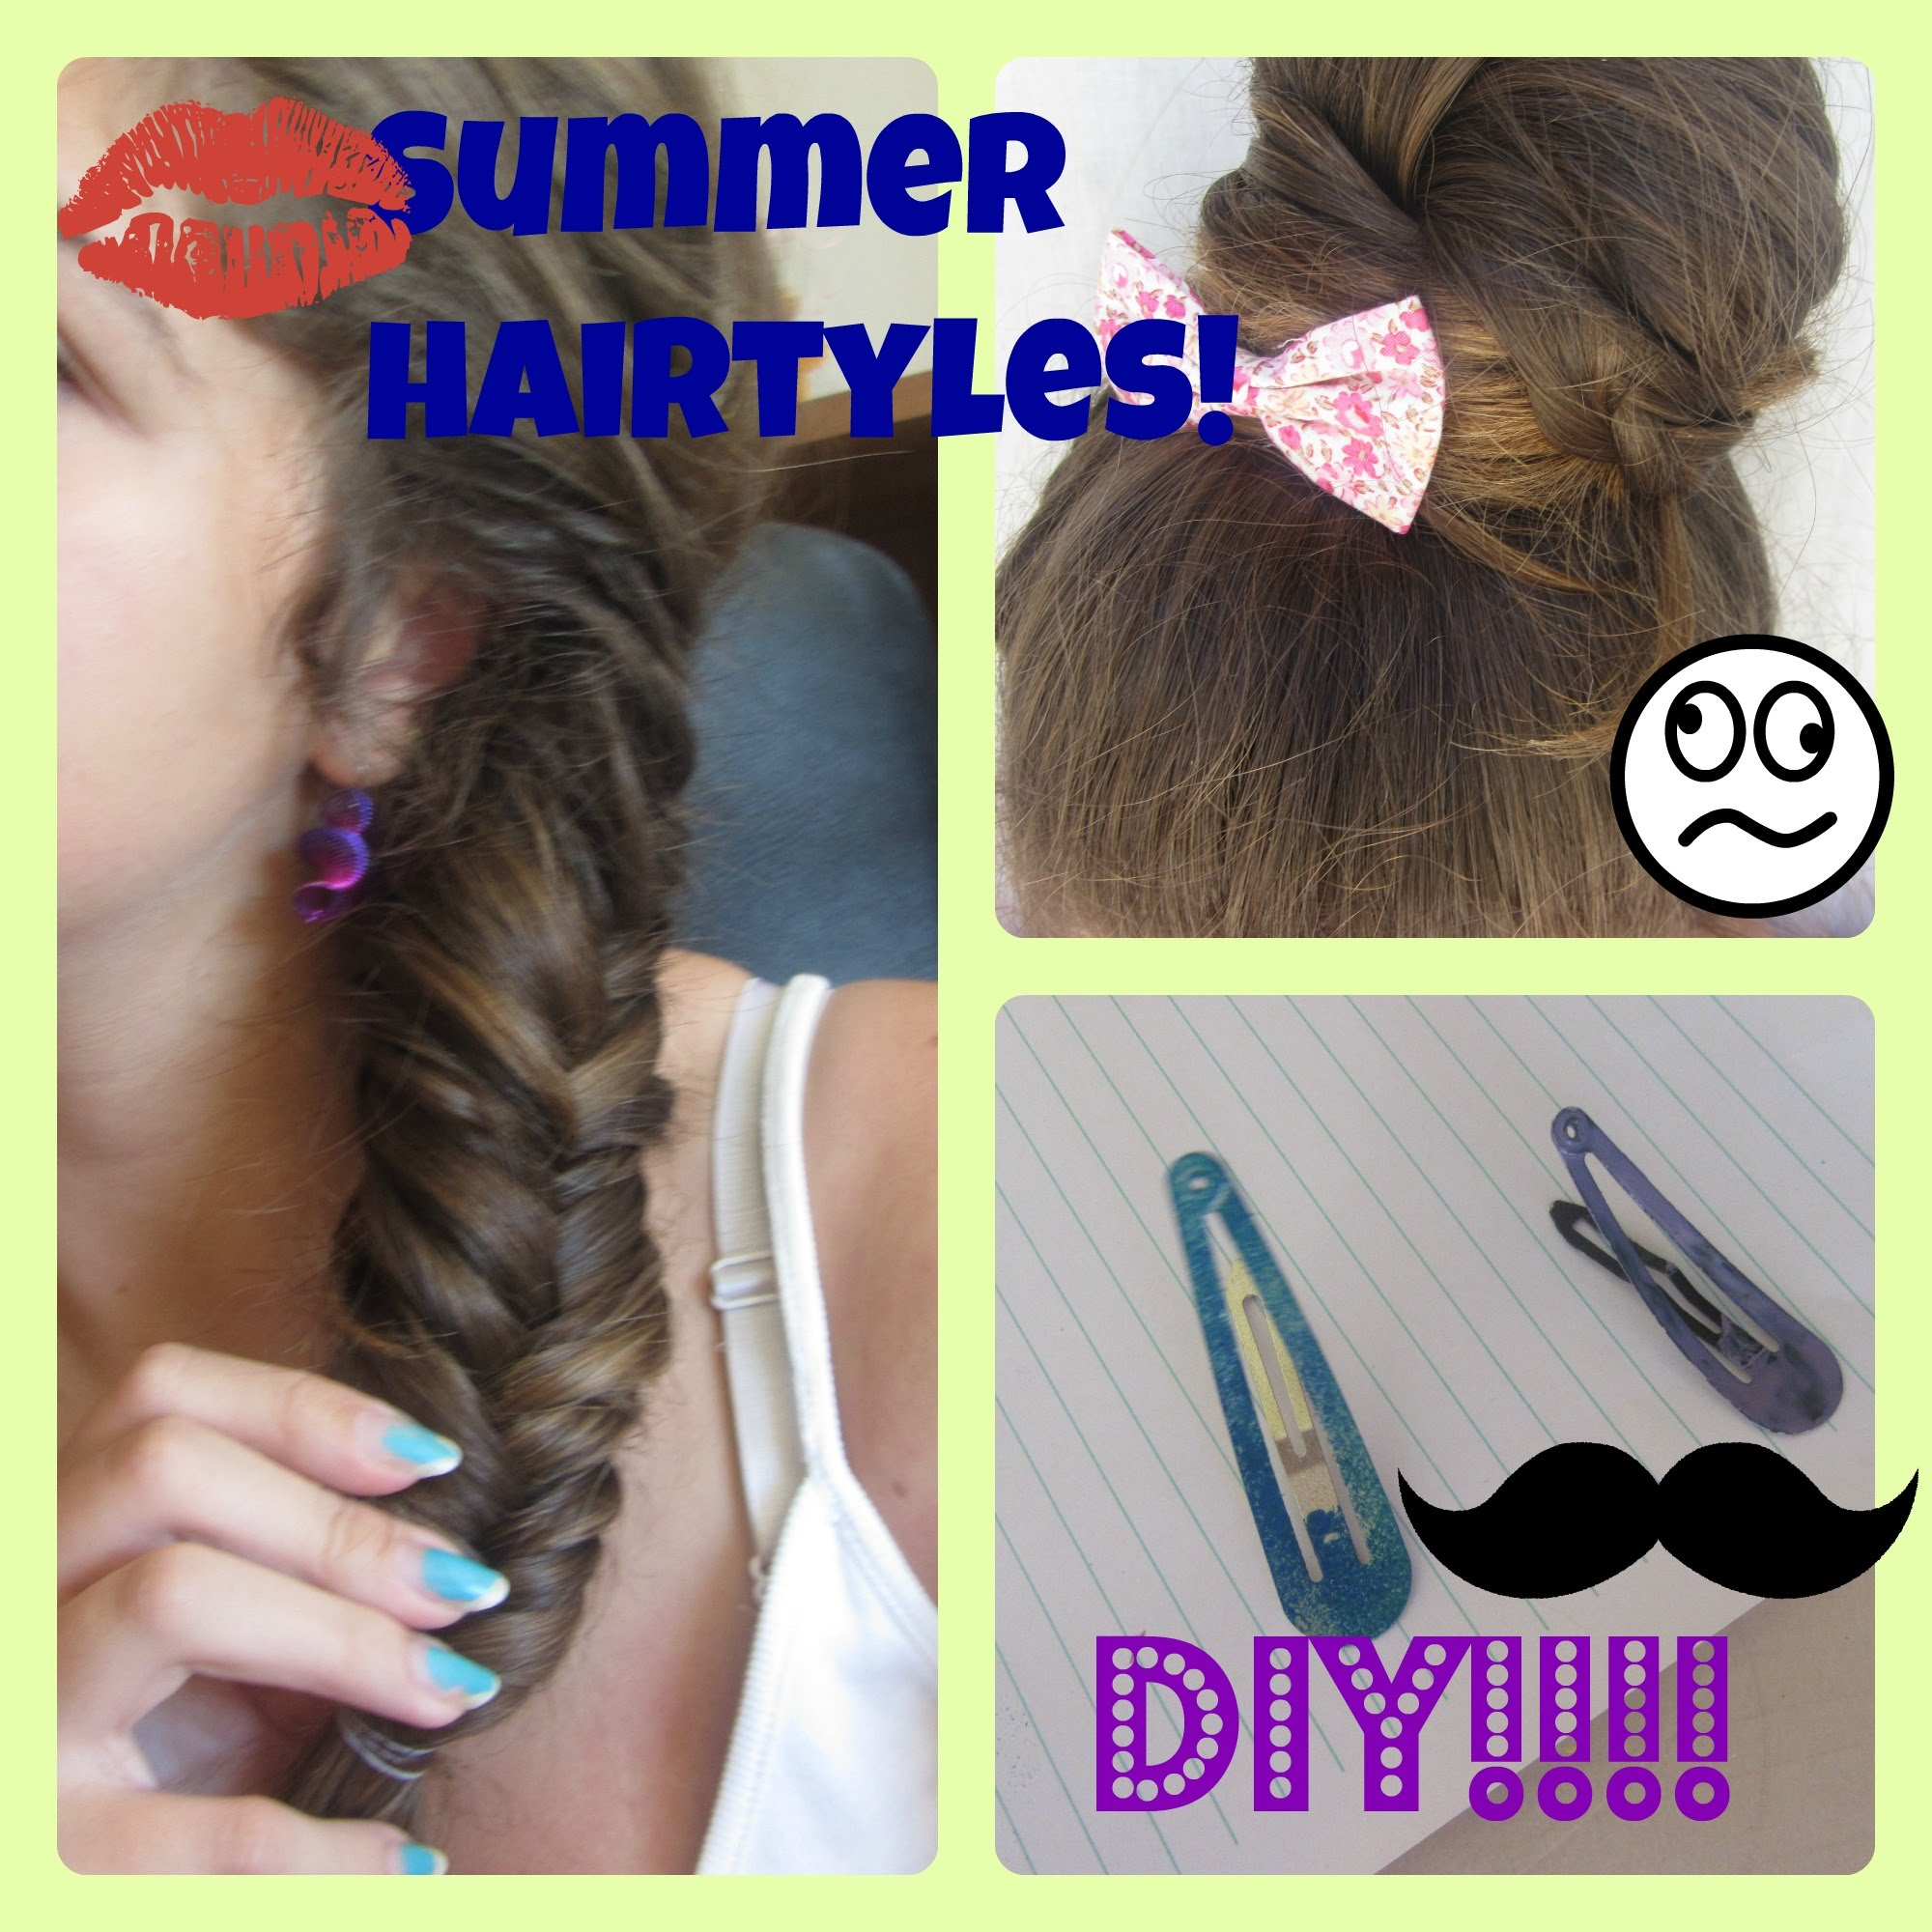 3 Summer Hairstyles+DIY Accessories! ~Ελληνικα~